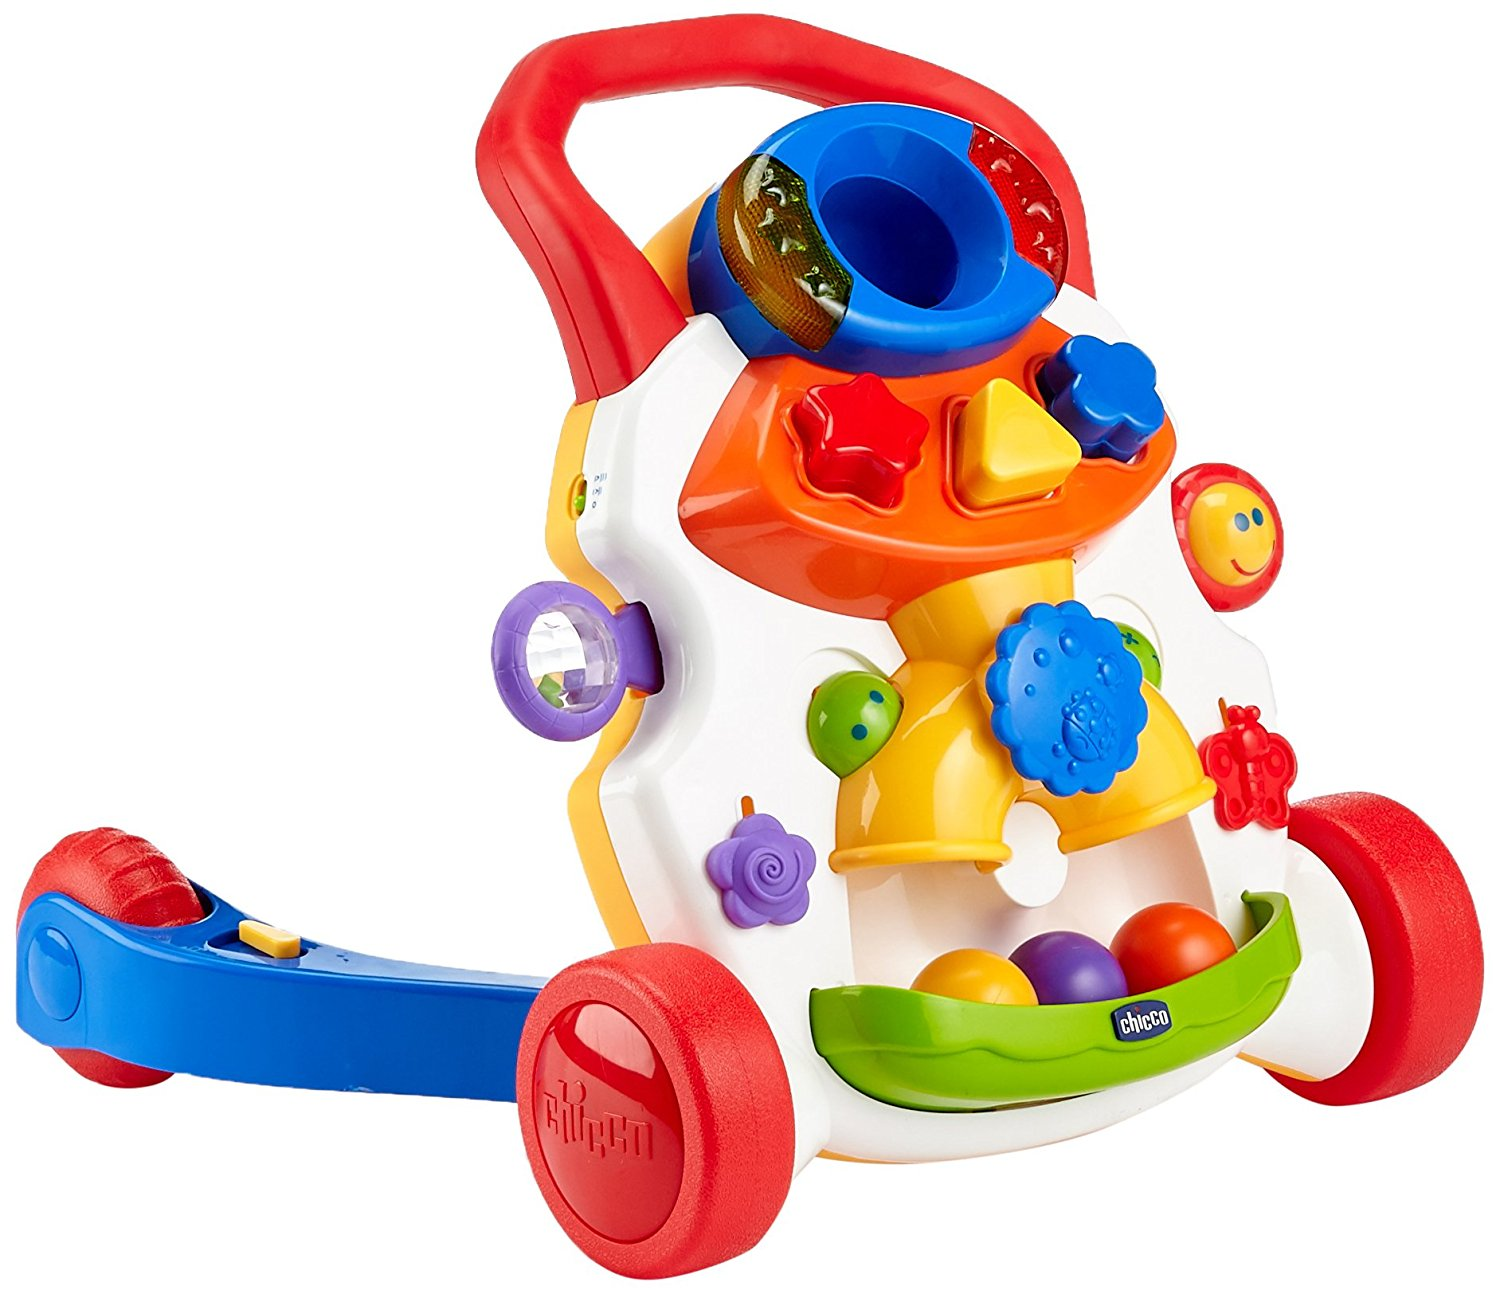 Activity Baby Walker (Discontinued by Manufacturer) By Chicco by Chicco